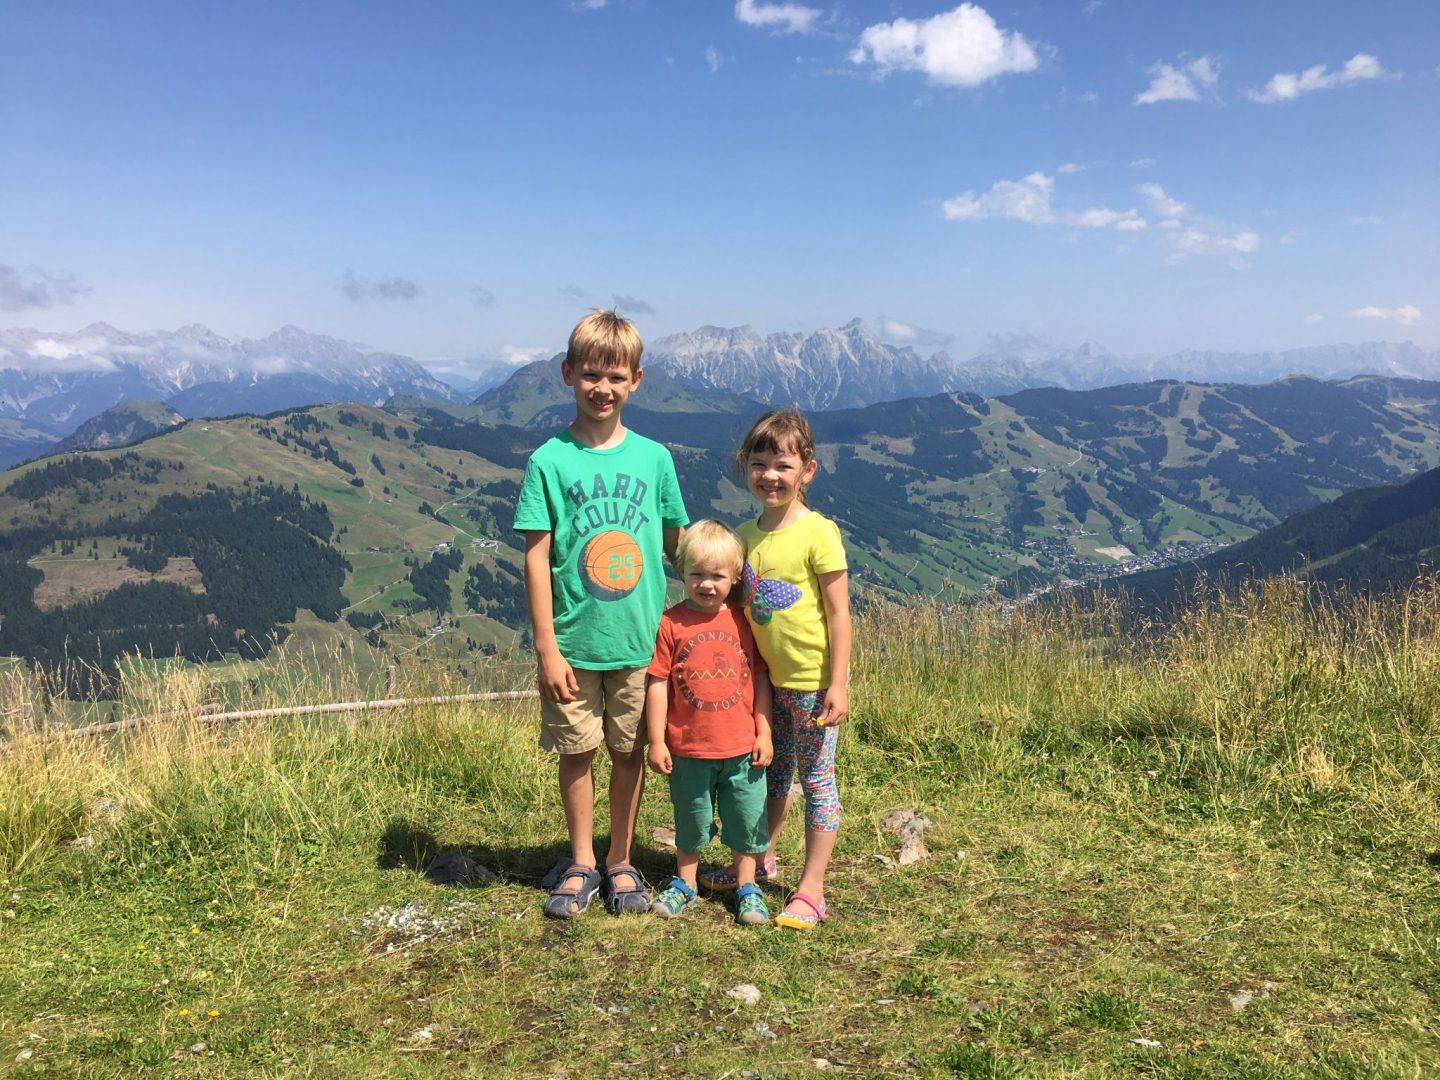 'A Few of my Favourite Things' from our Summer Holiday in Austria